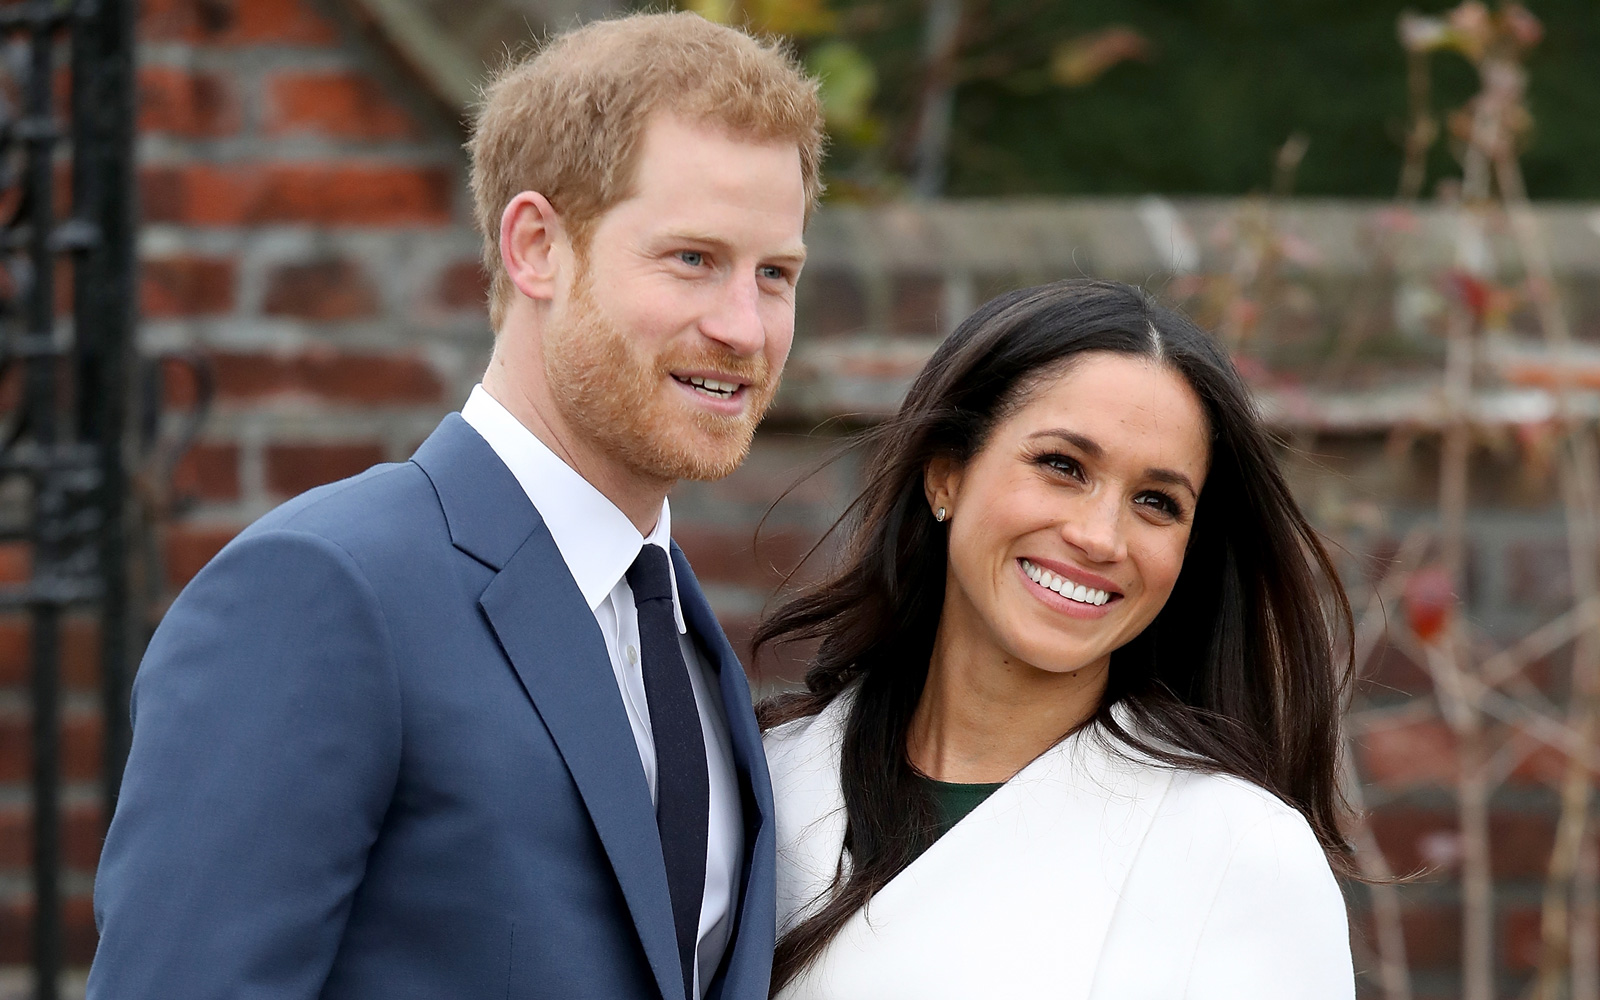 Is Meghan Markle a Princess?